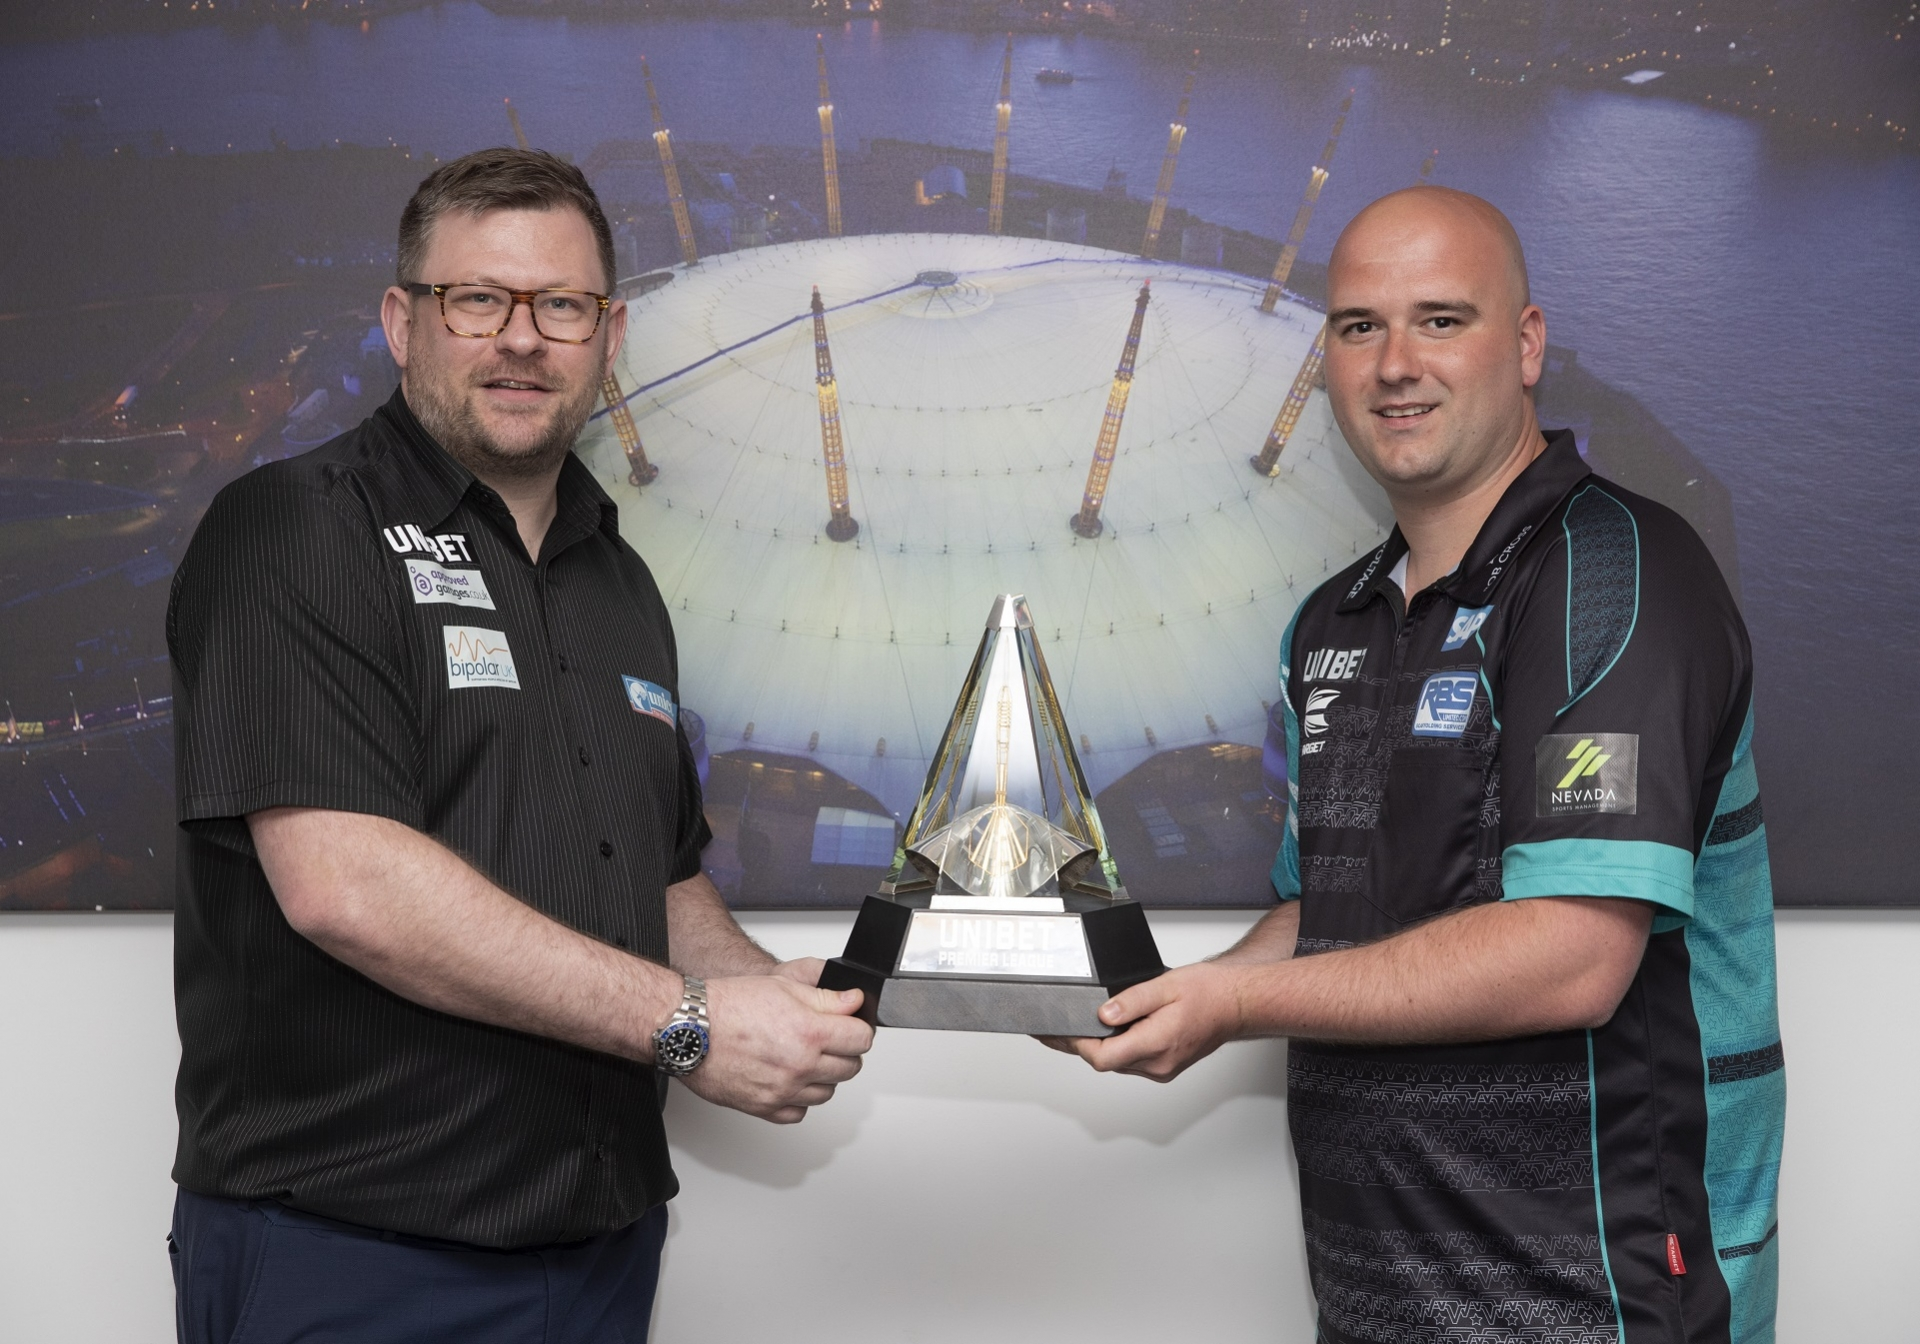 James Wade & Rob Cross